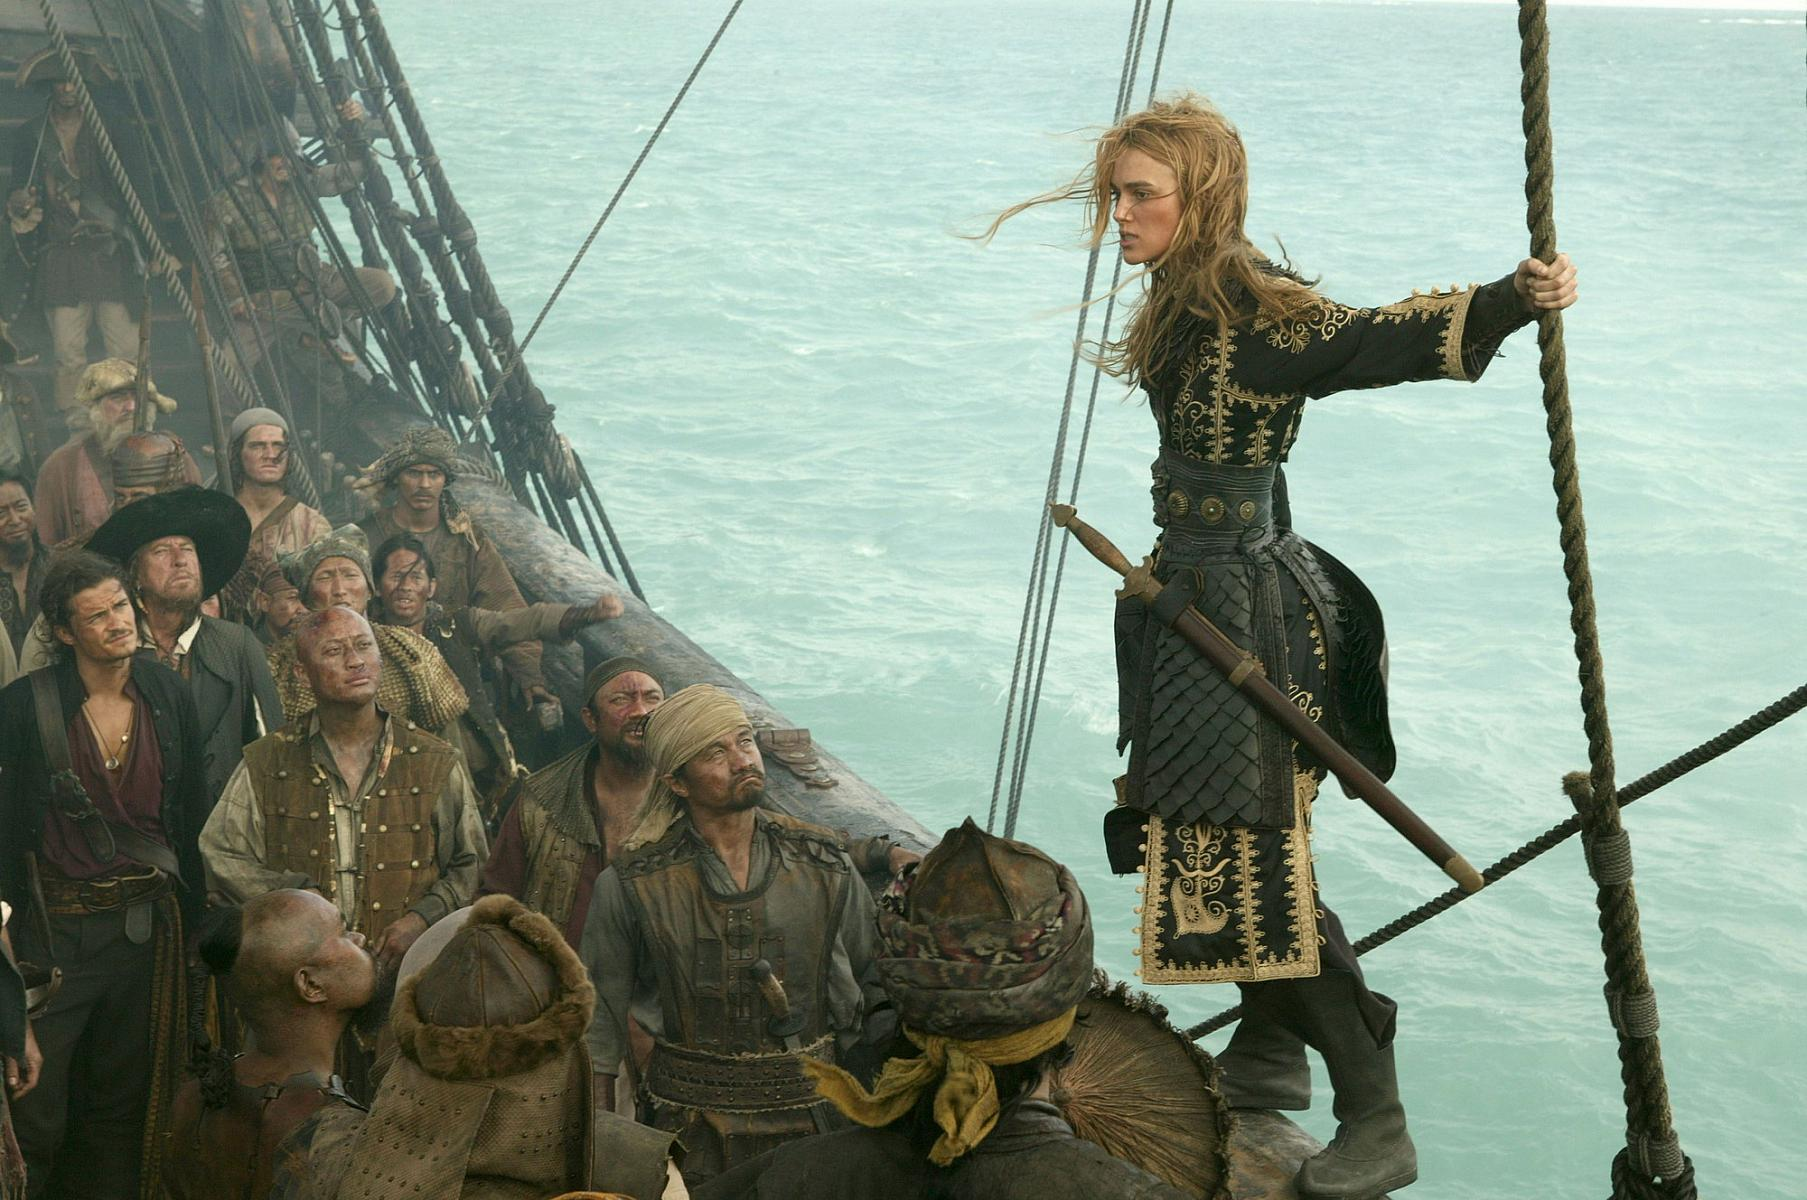 The Pirate Filme Pirates Of The Caribbean At Worlds End Movie Photos